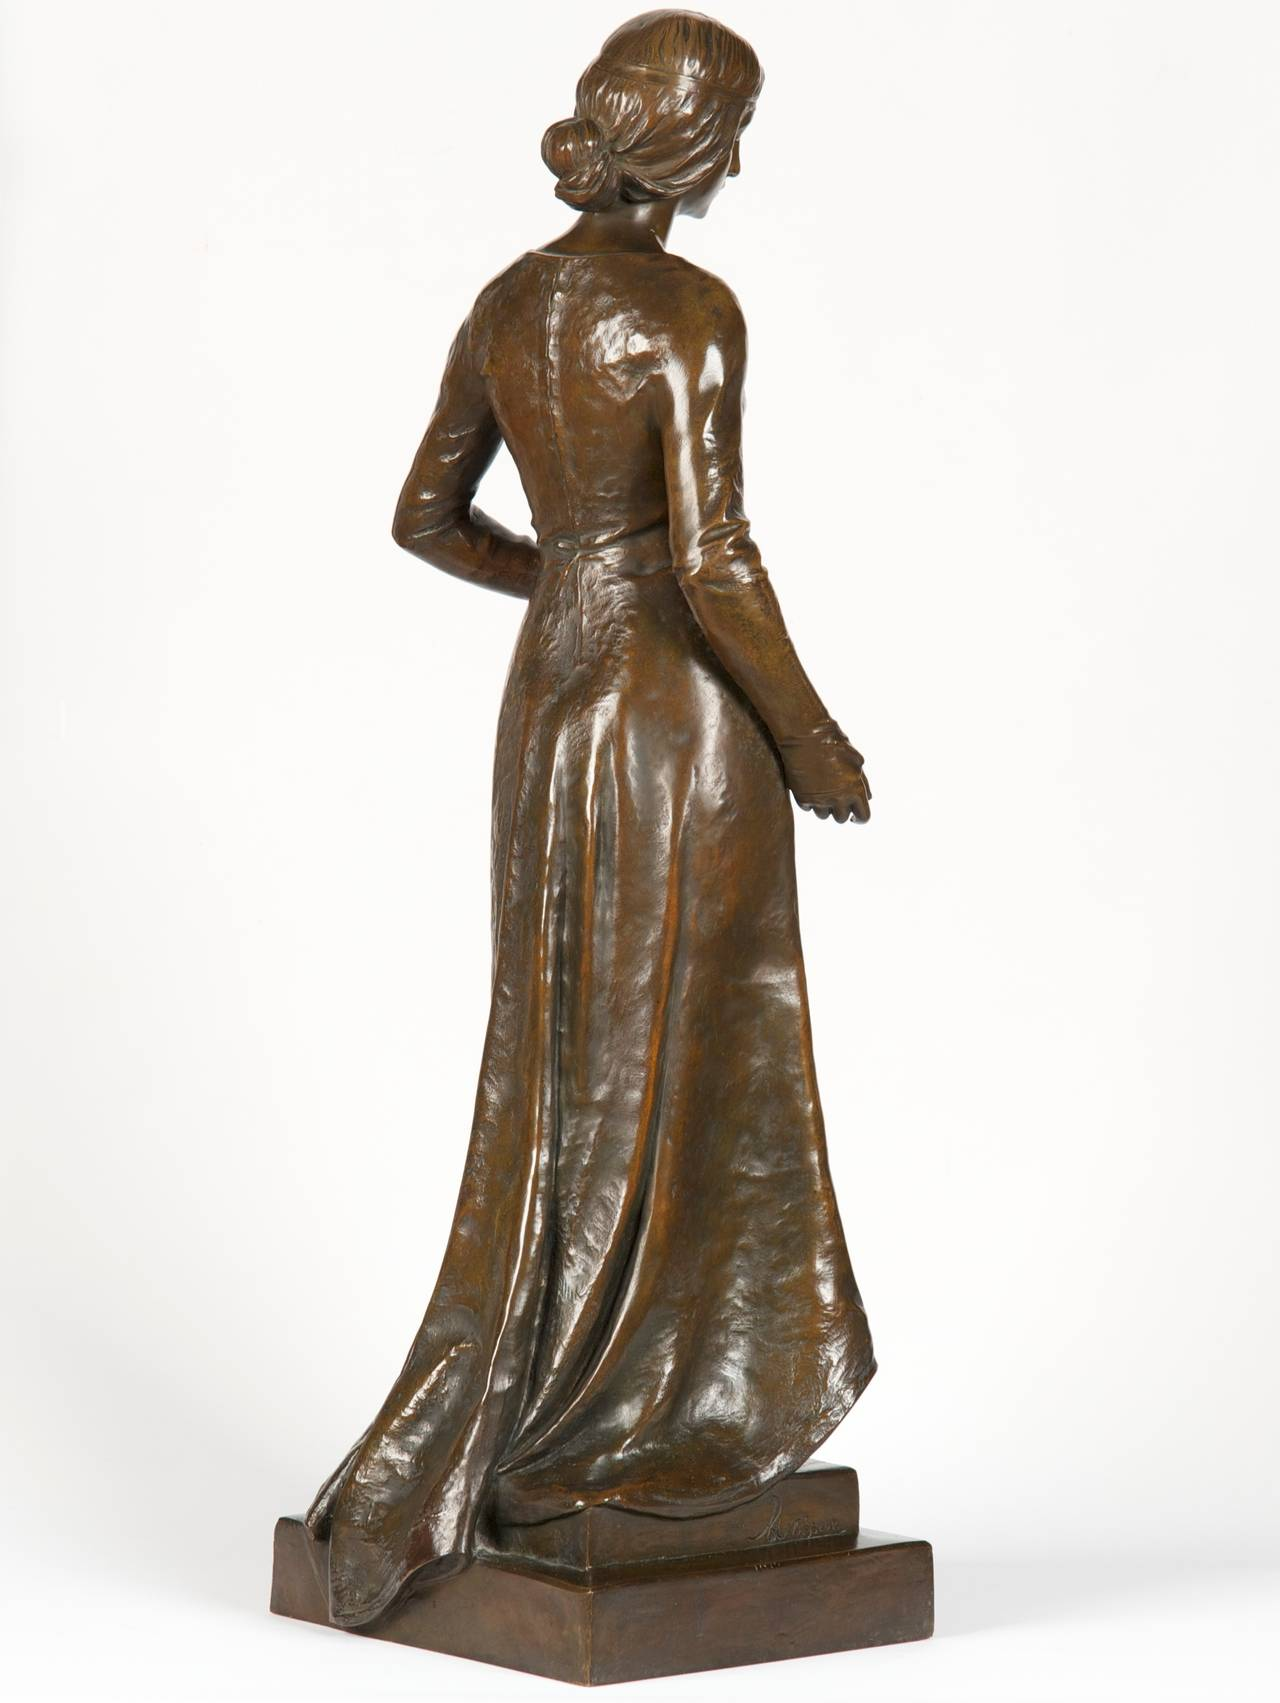 Romantic Henri Levasseur Antique French Bronze Sculpture of Maiden with Rosary, 1900